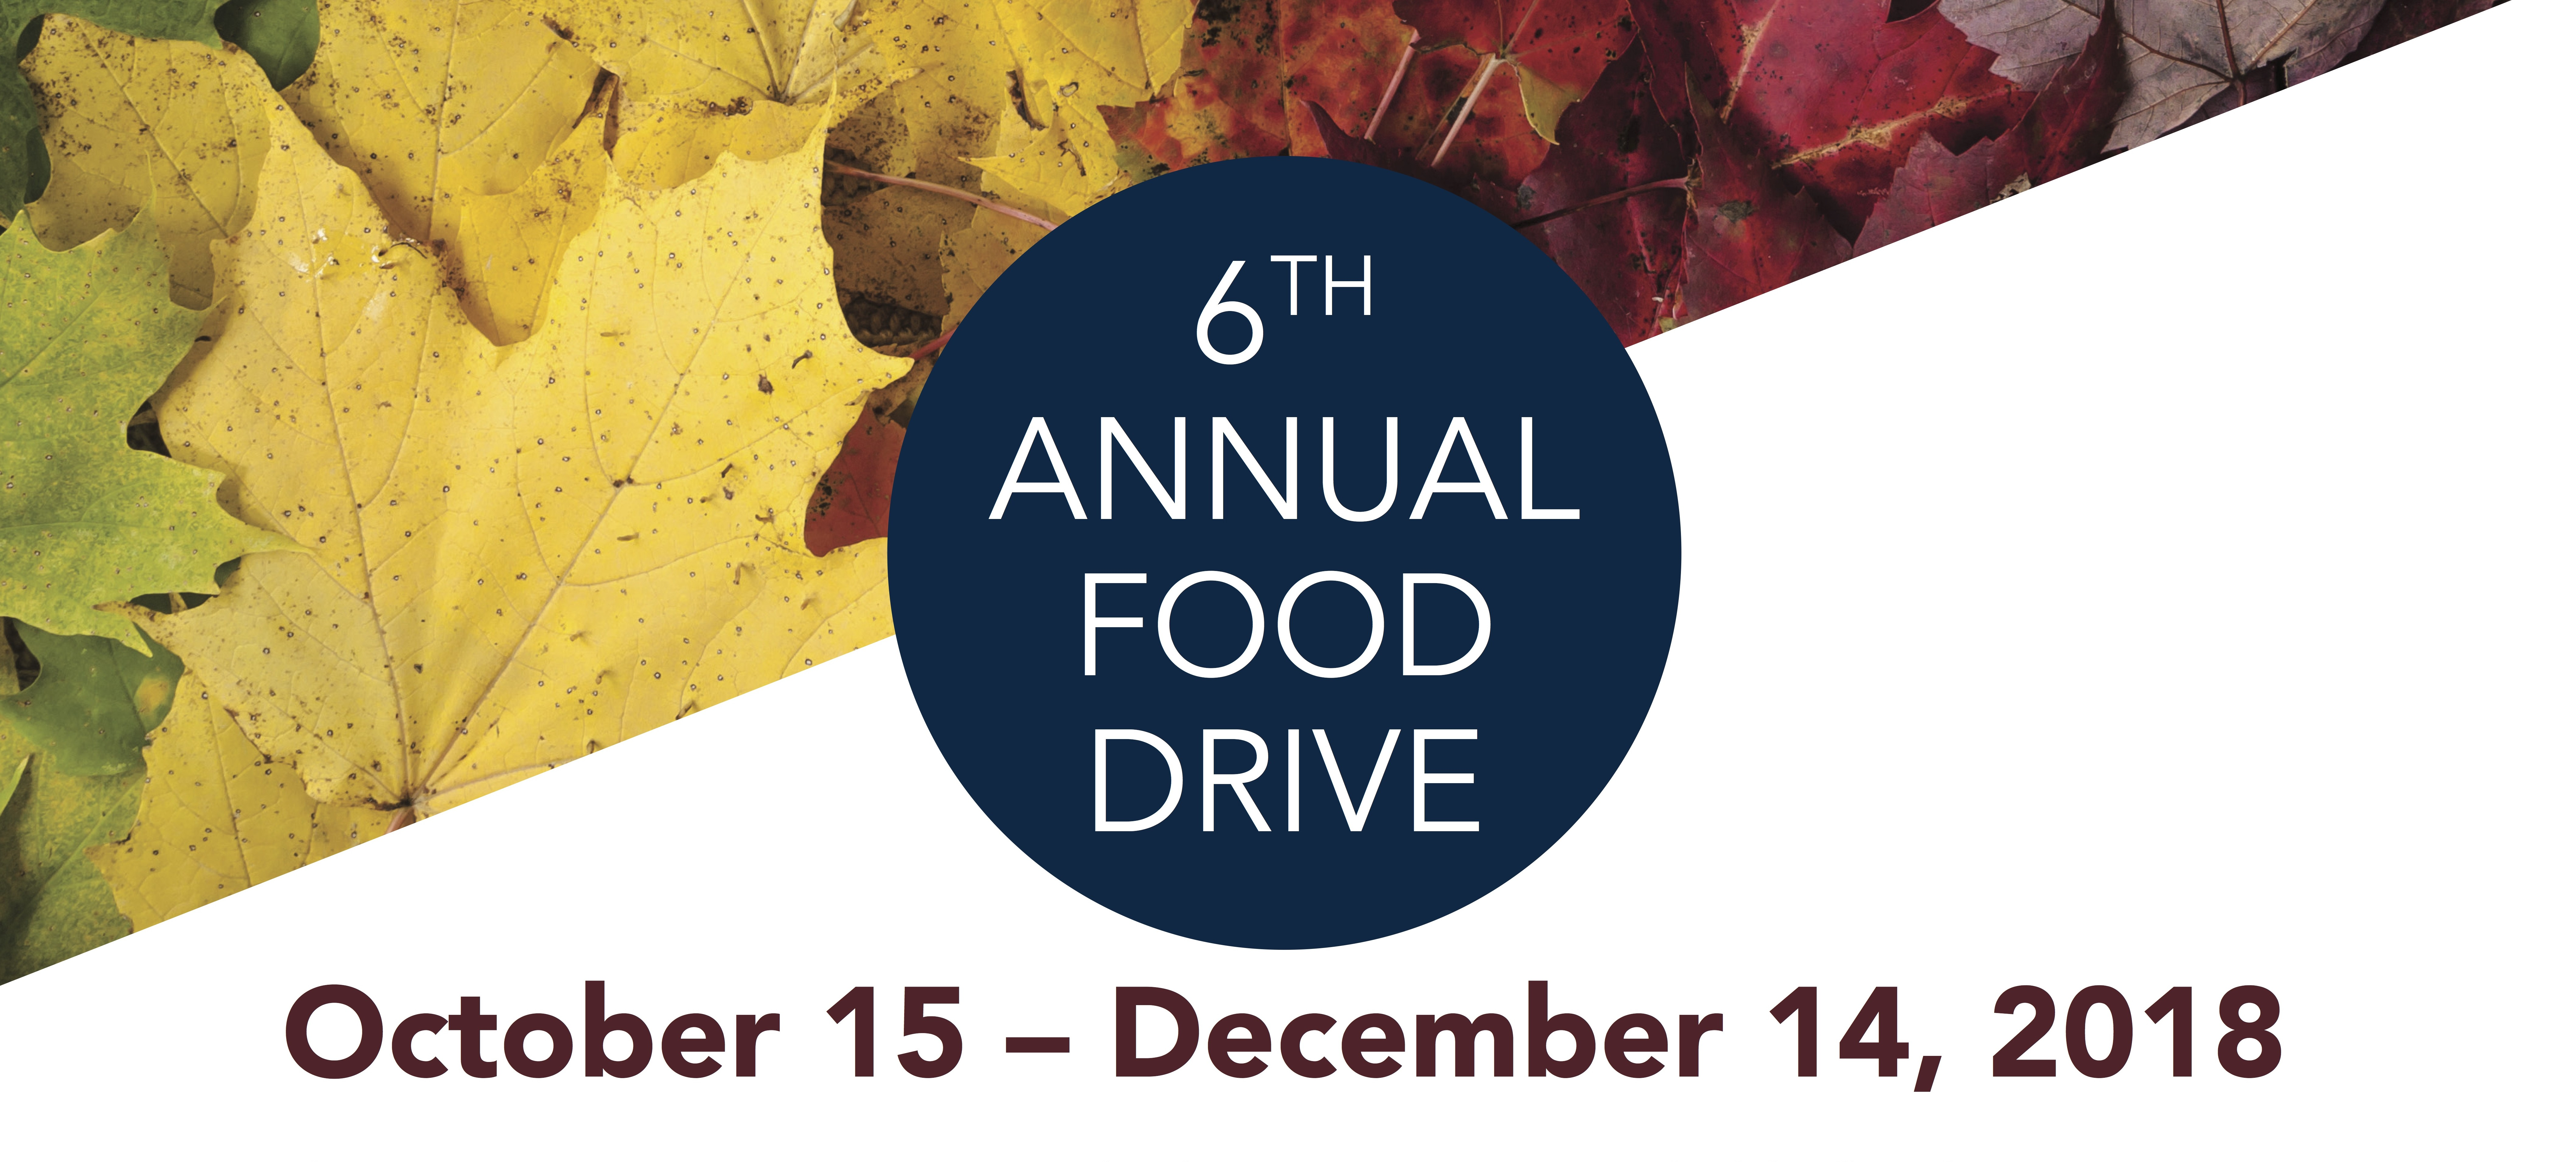 For the sixth year in a row, Prominent Properties Sotheby's International Realty hosts food drive, collecting donations at all of the firm's office locations